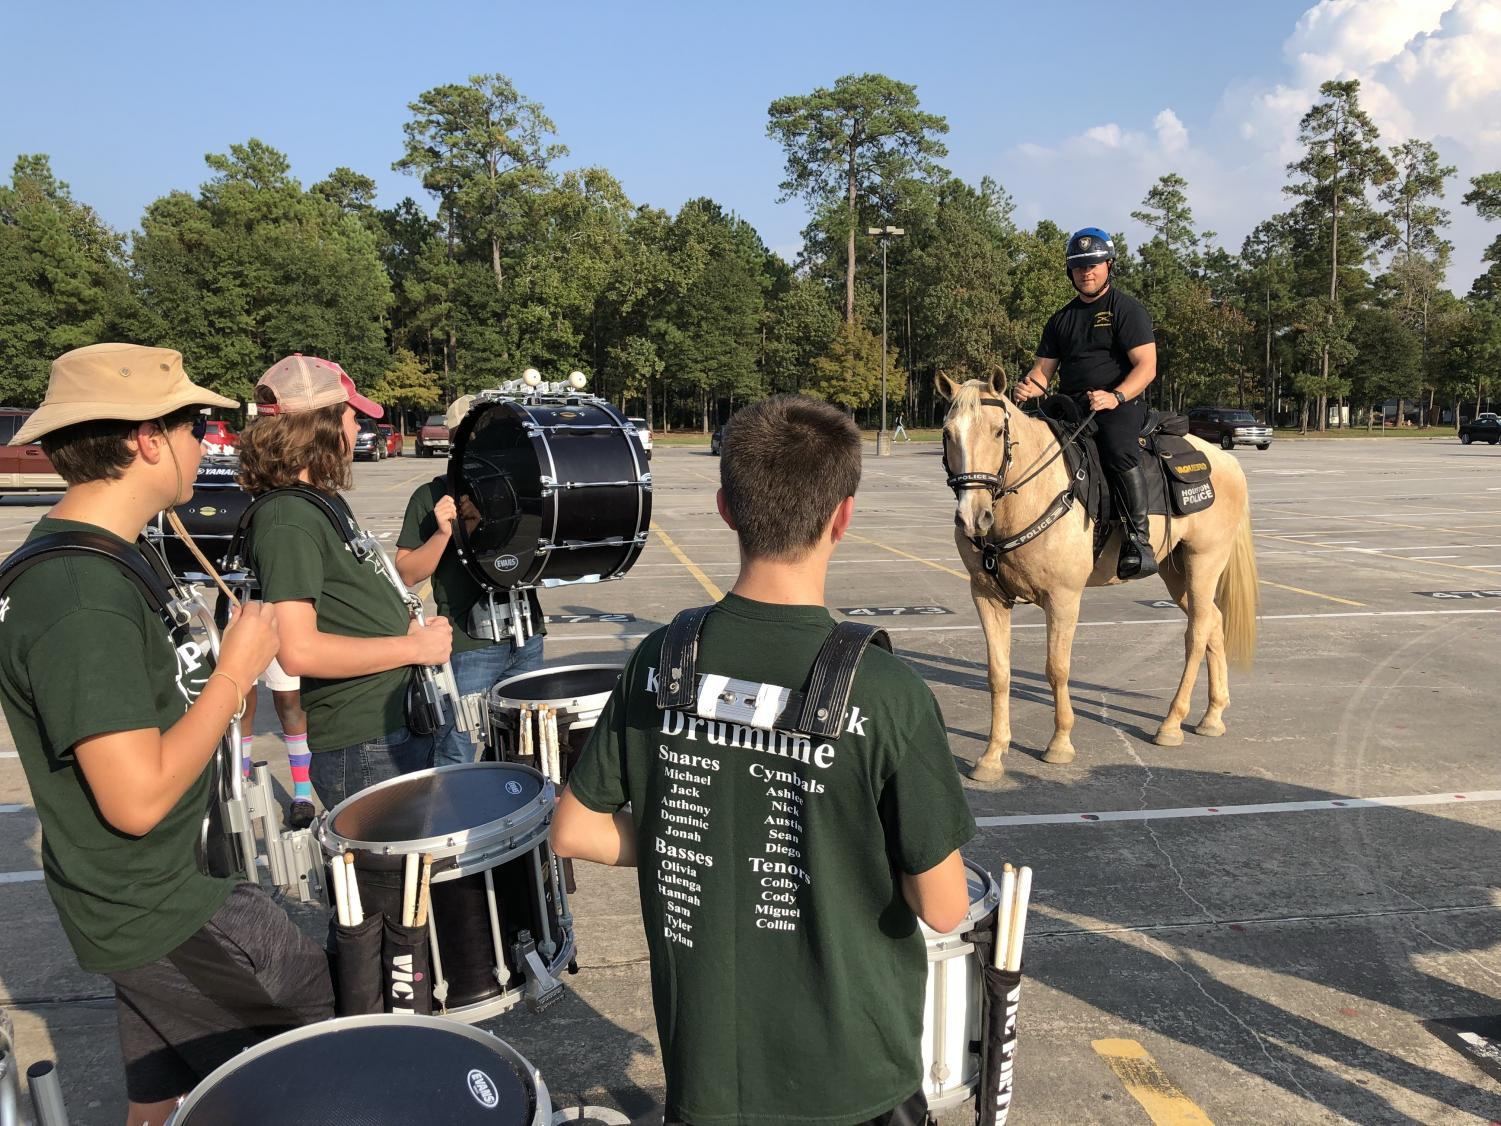 Members of the drumline visit with a Houston police officer as they prepare to play in front of the horses. The HPD brought their horses to the school to listen to the drumline to help prepare the horses to deal with the sounds of gunshots.